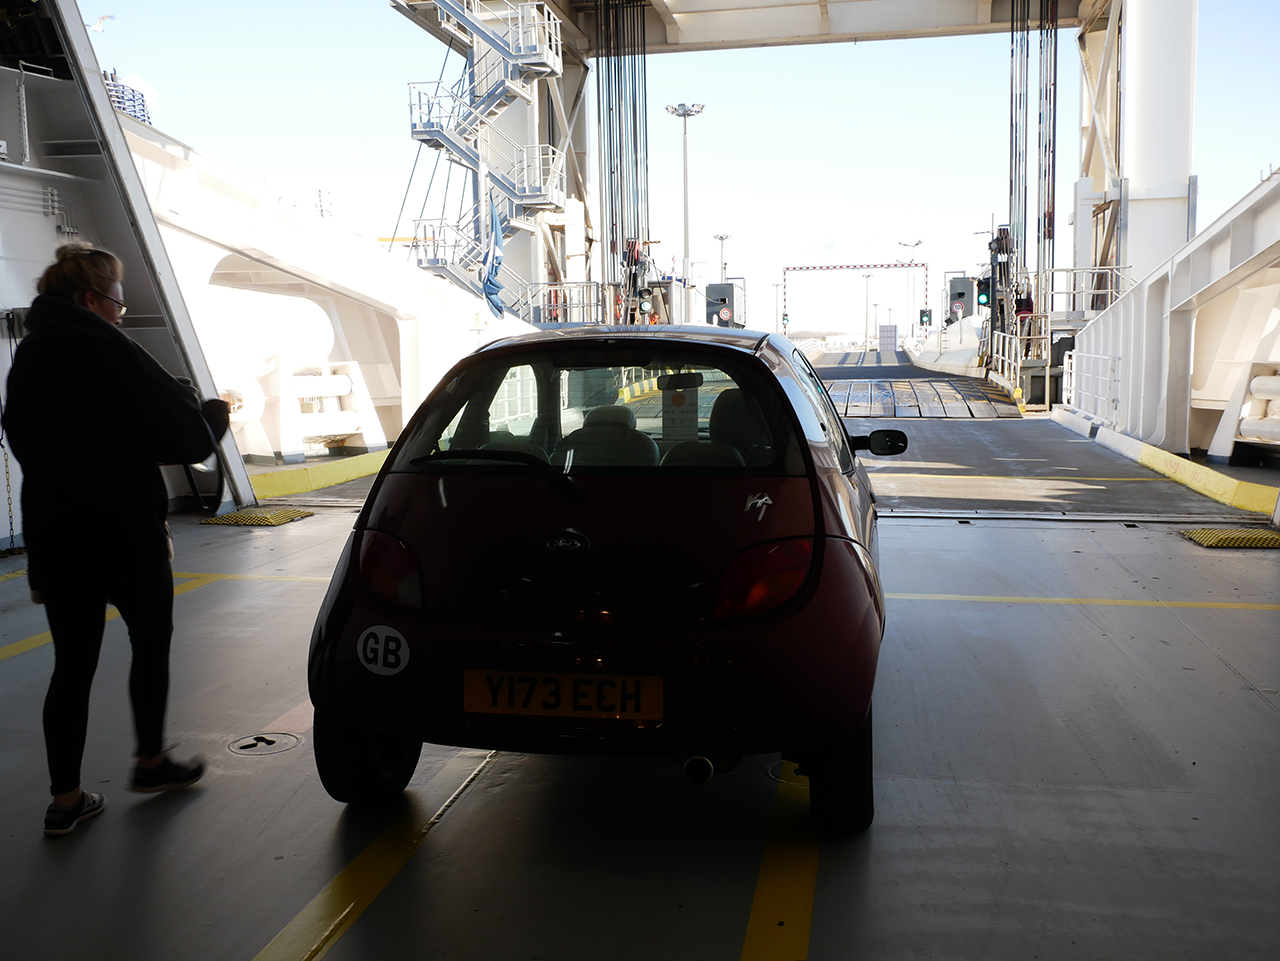 Taking the ferry from Dover to Calais